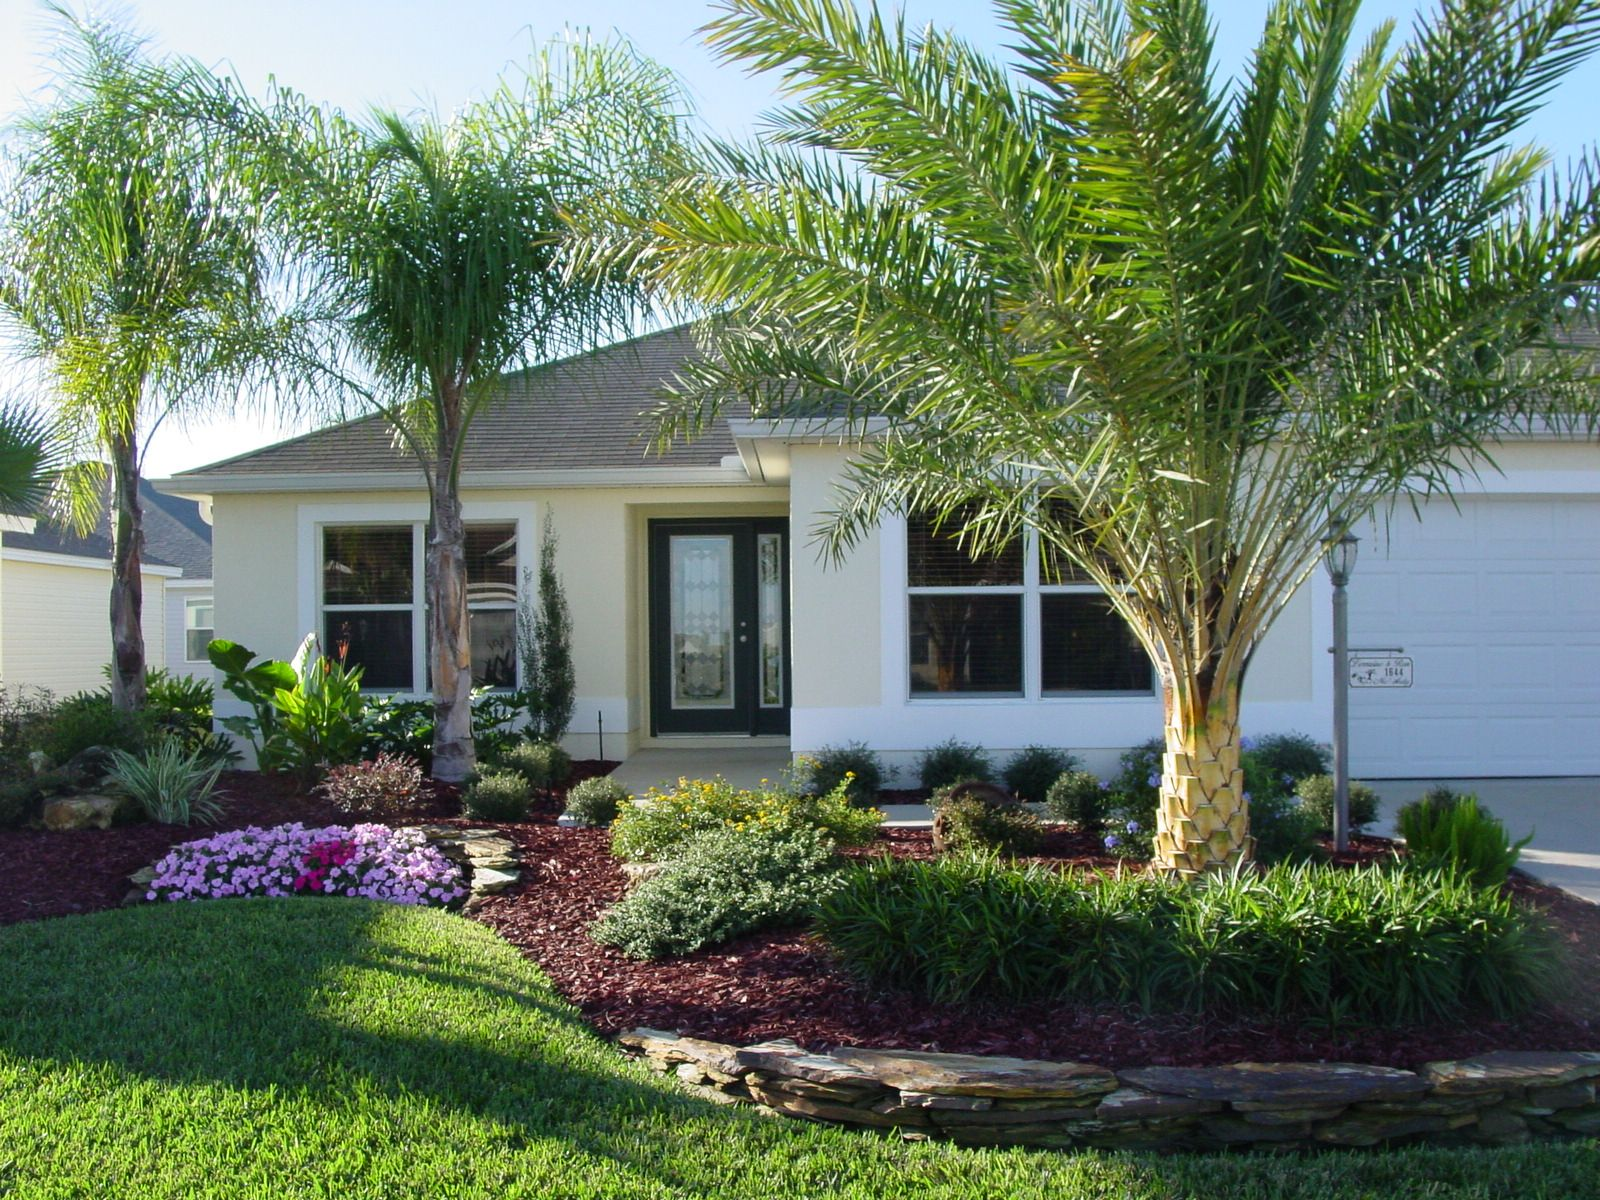 florida landscaping ideas | rons landscaping inc » about us